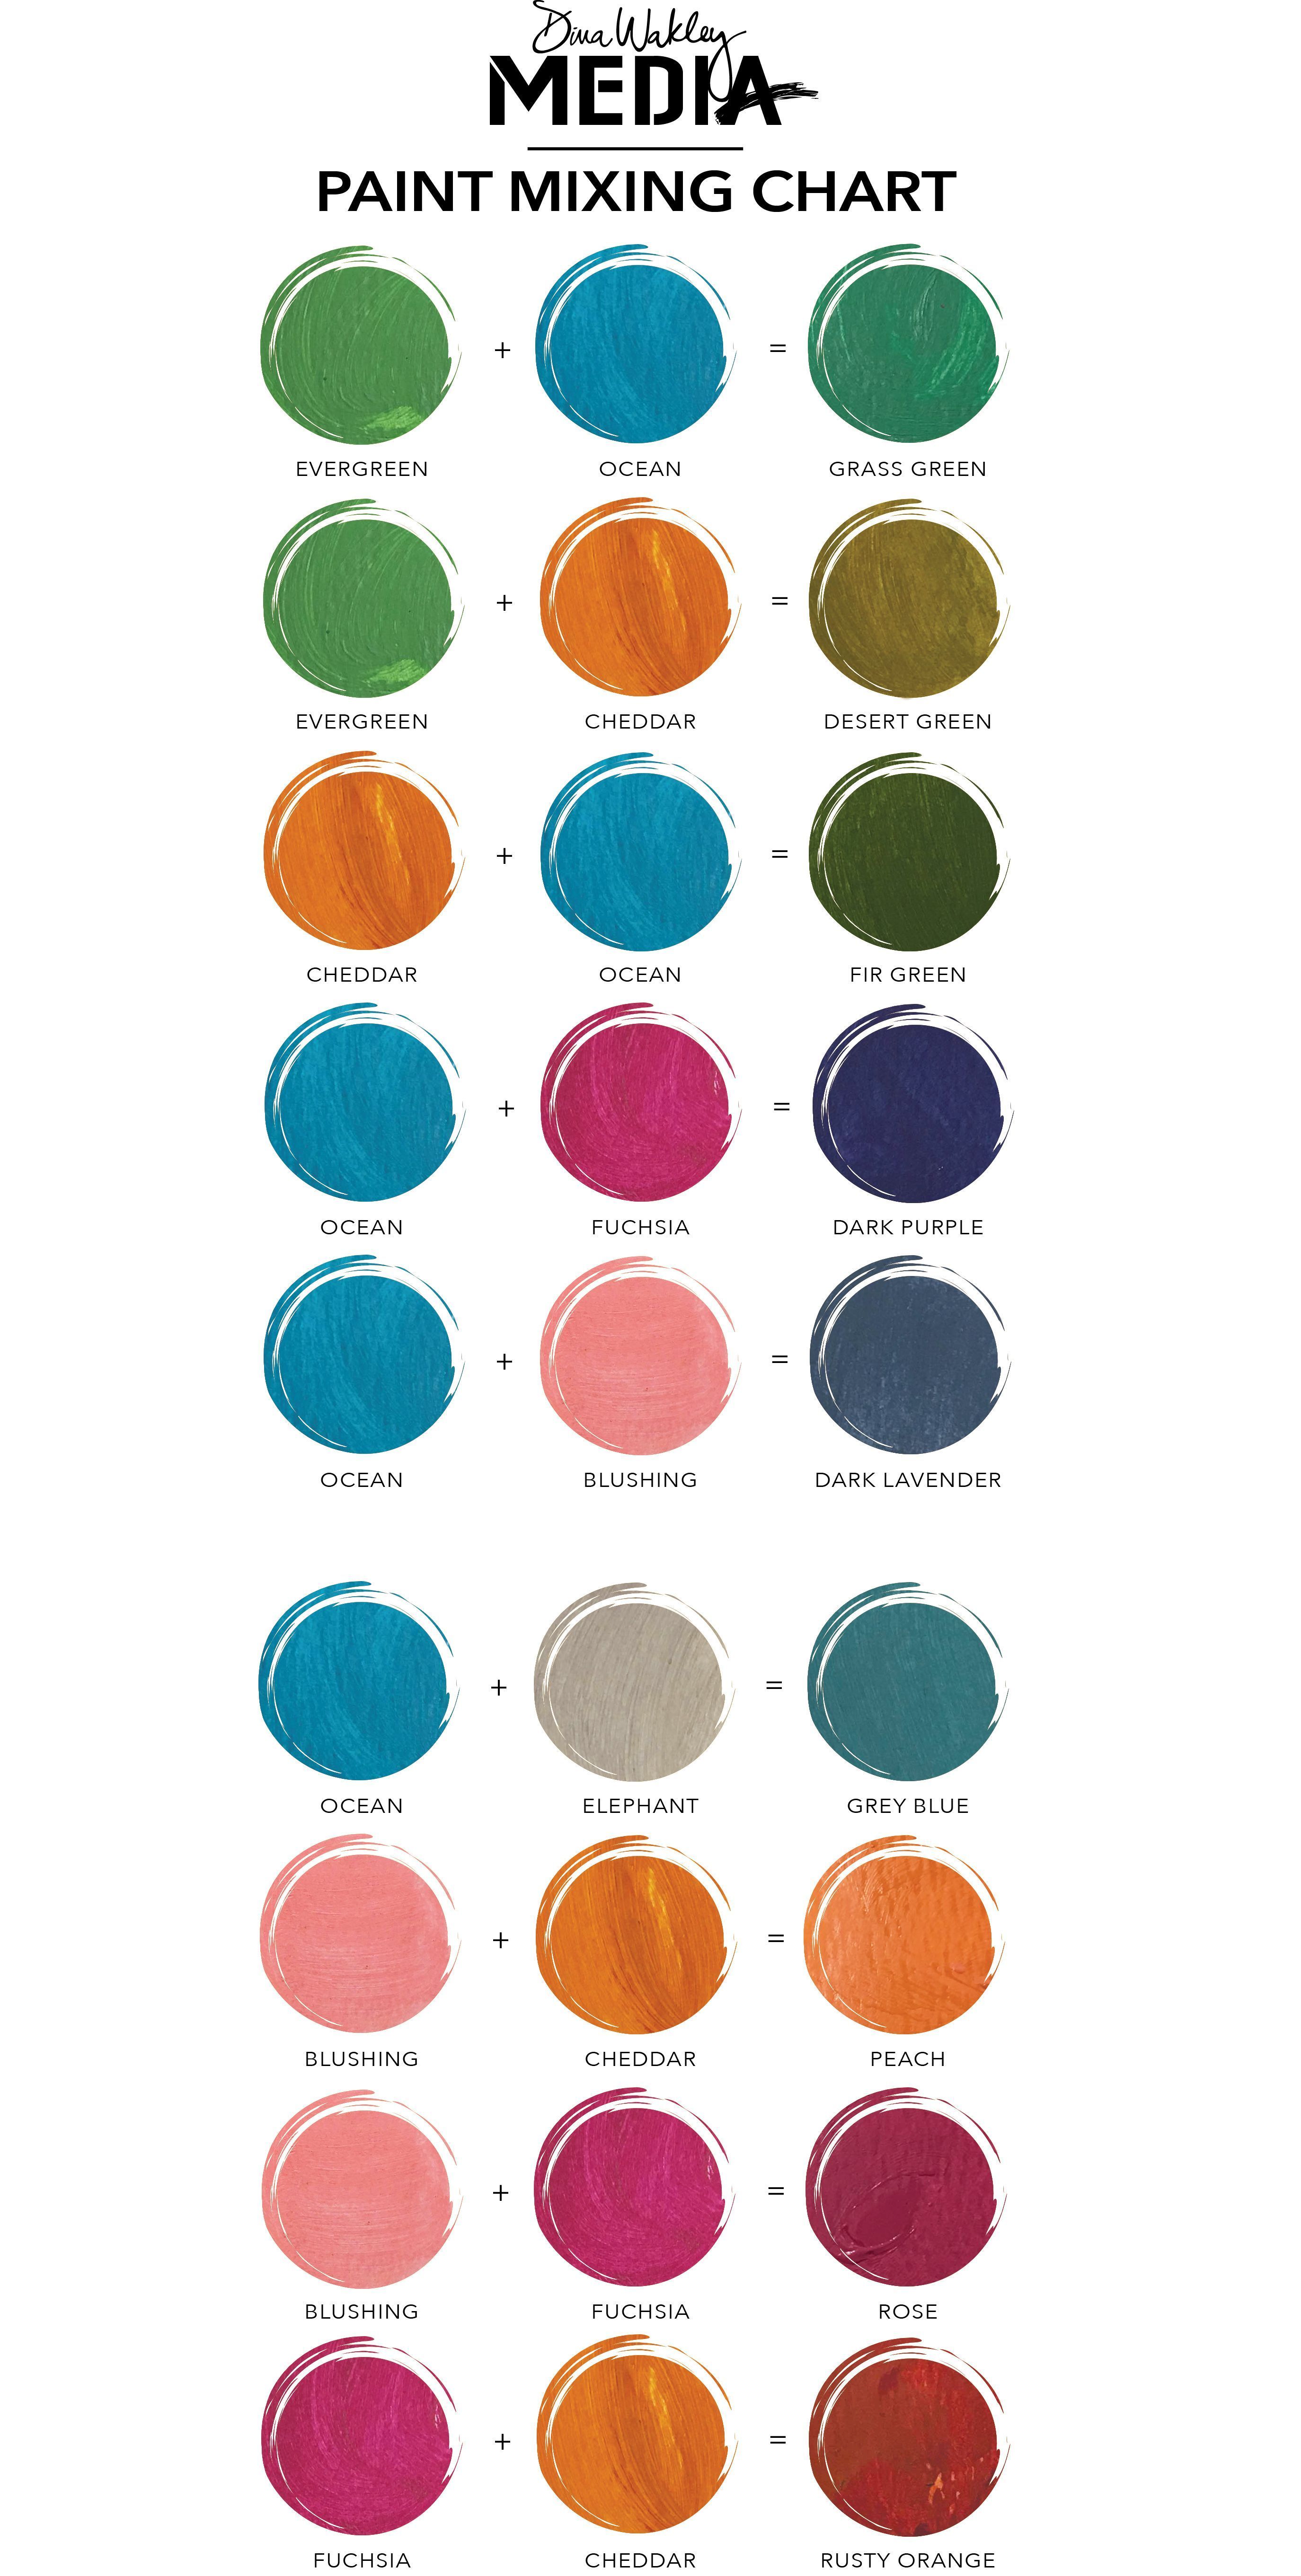 New Dina Wakley Media Paint Color Mixing Chart